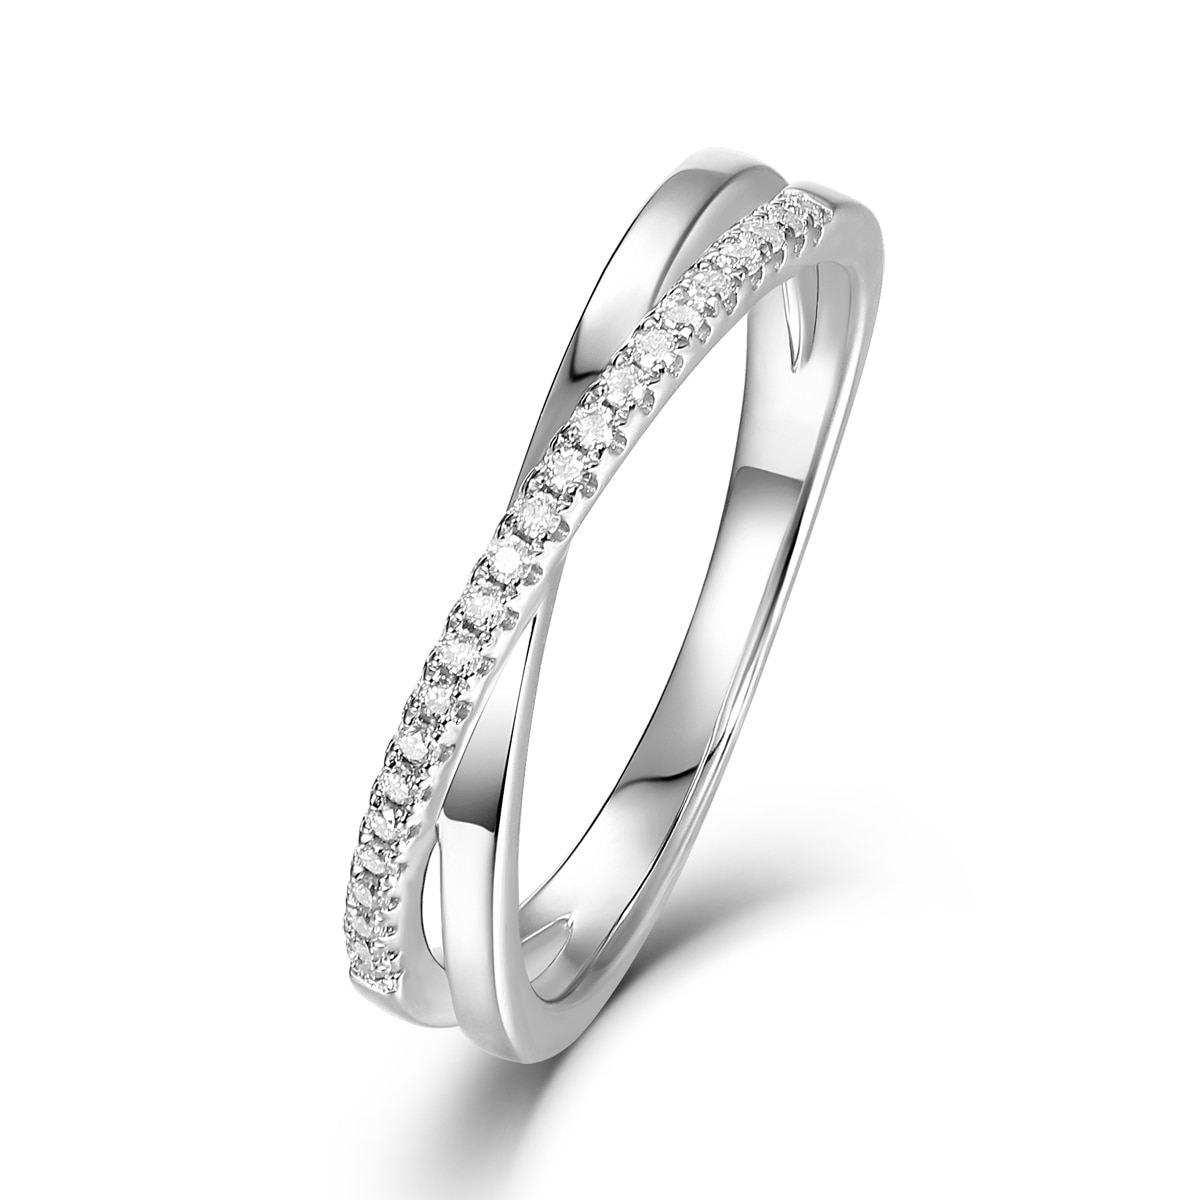 BOEYCJR 925 Silver D color 1.5mm  Moissanite VVS1 Simple Design Wedding Ring With national certificate for Women Gift